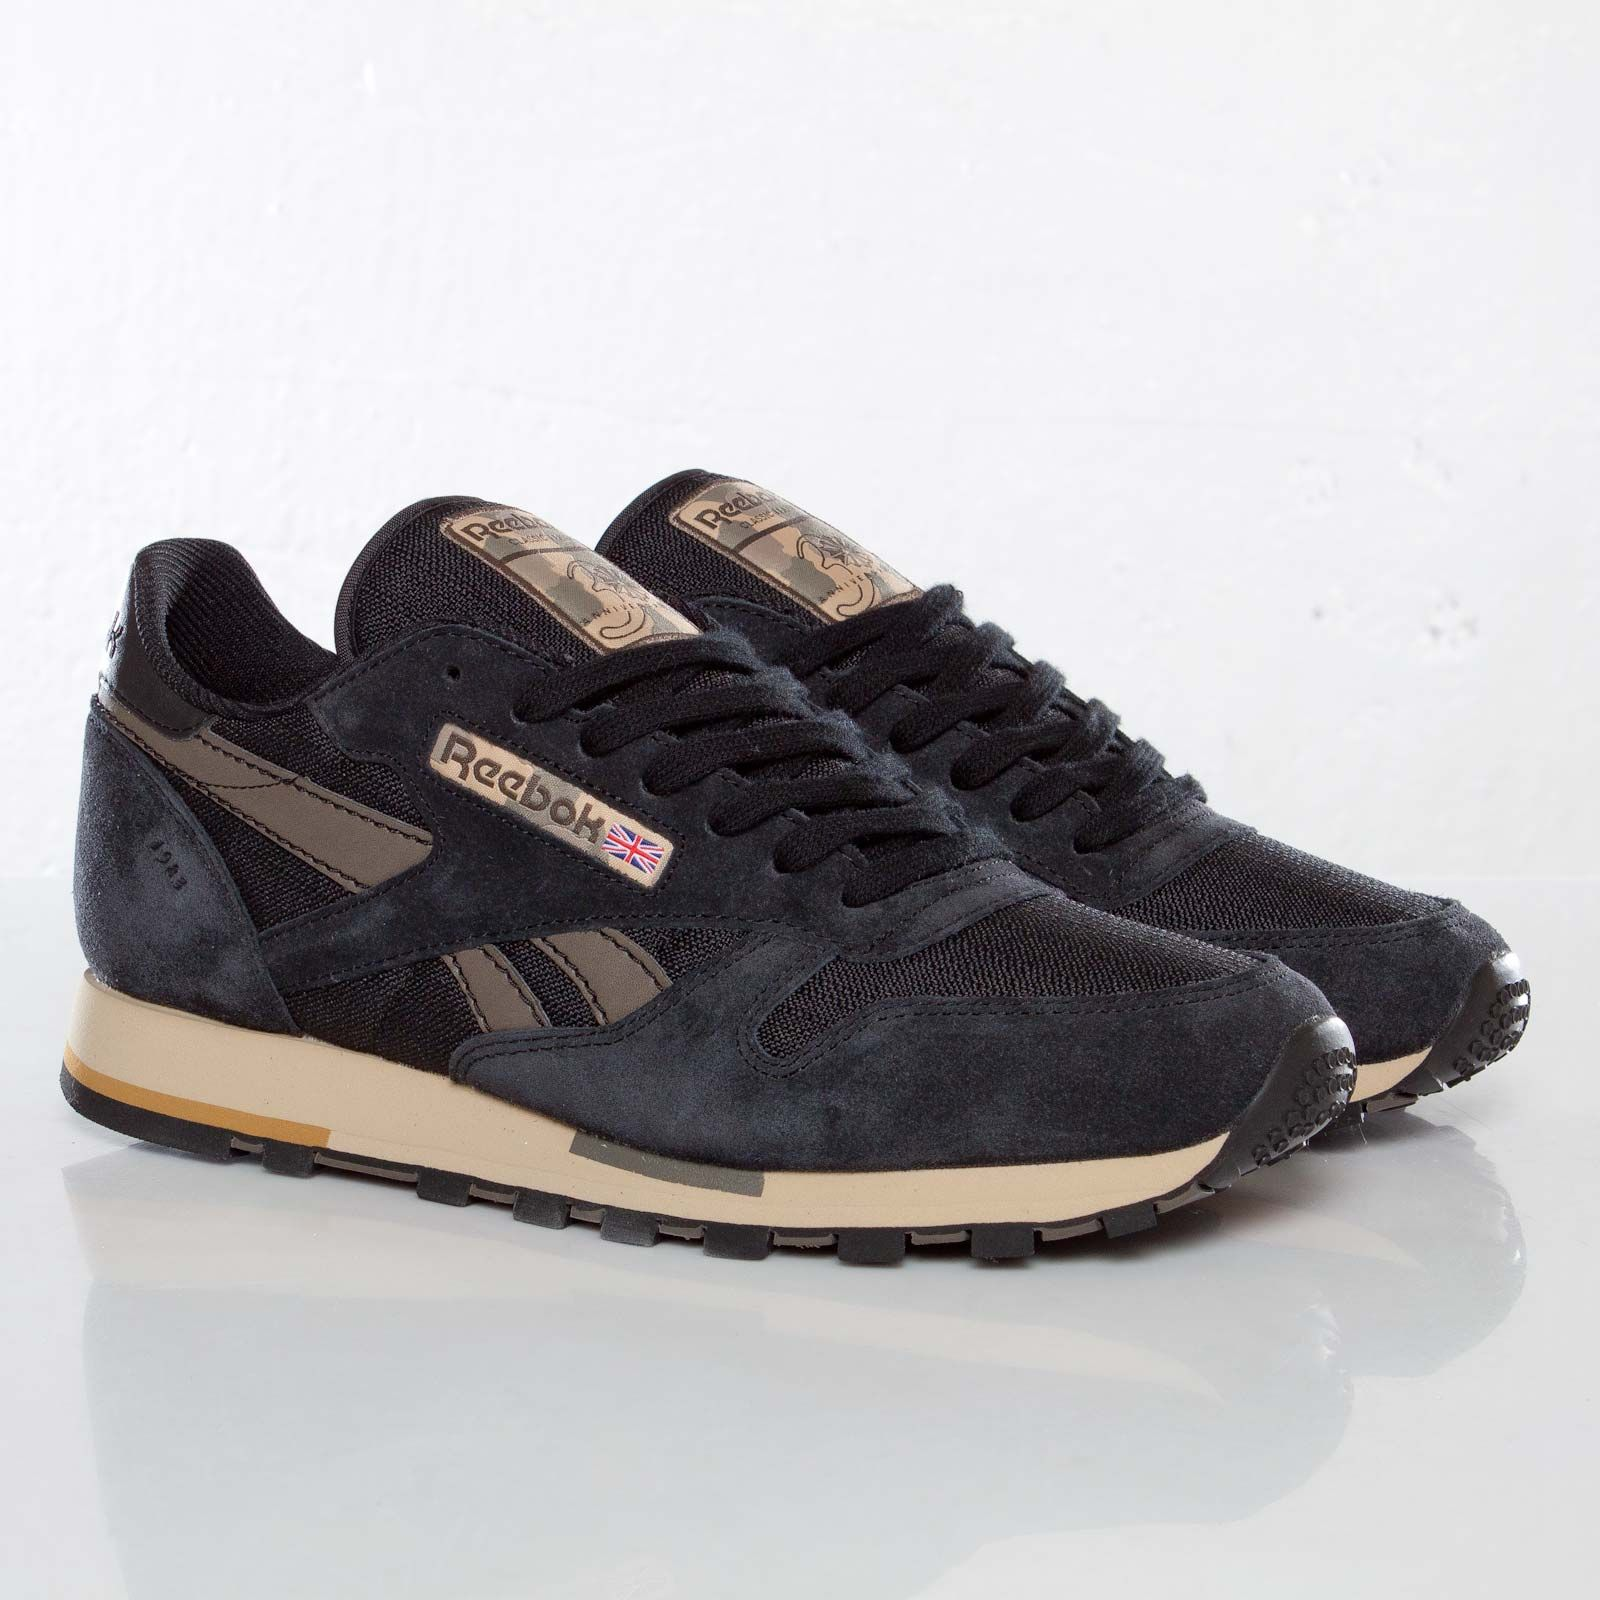 04ab15433d28c2 Reebok Classic Leather Utility - V47280